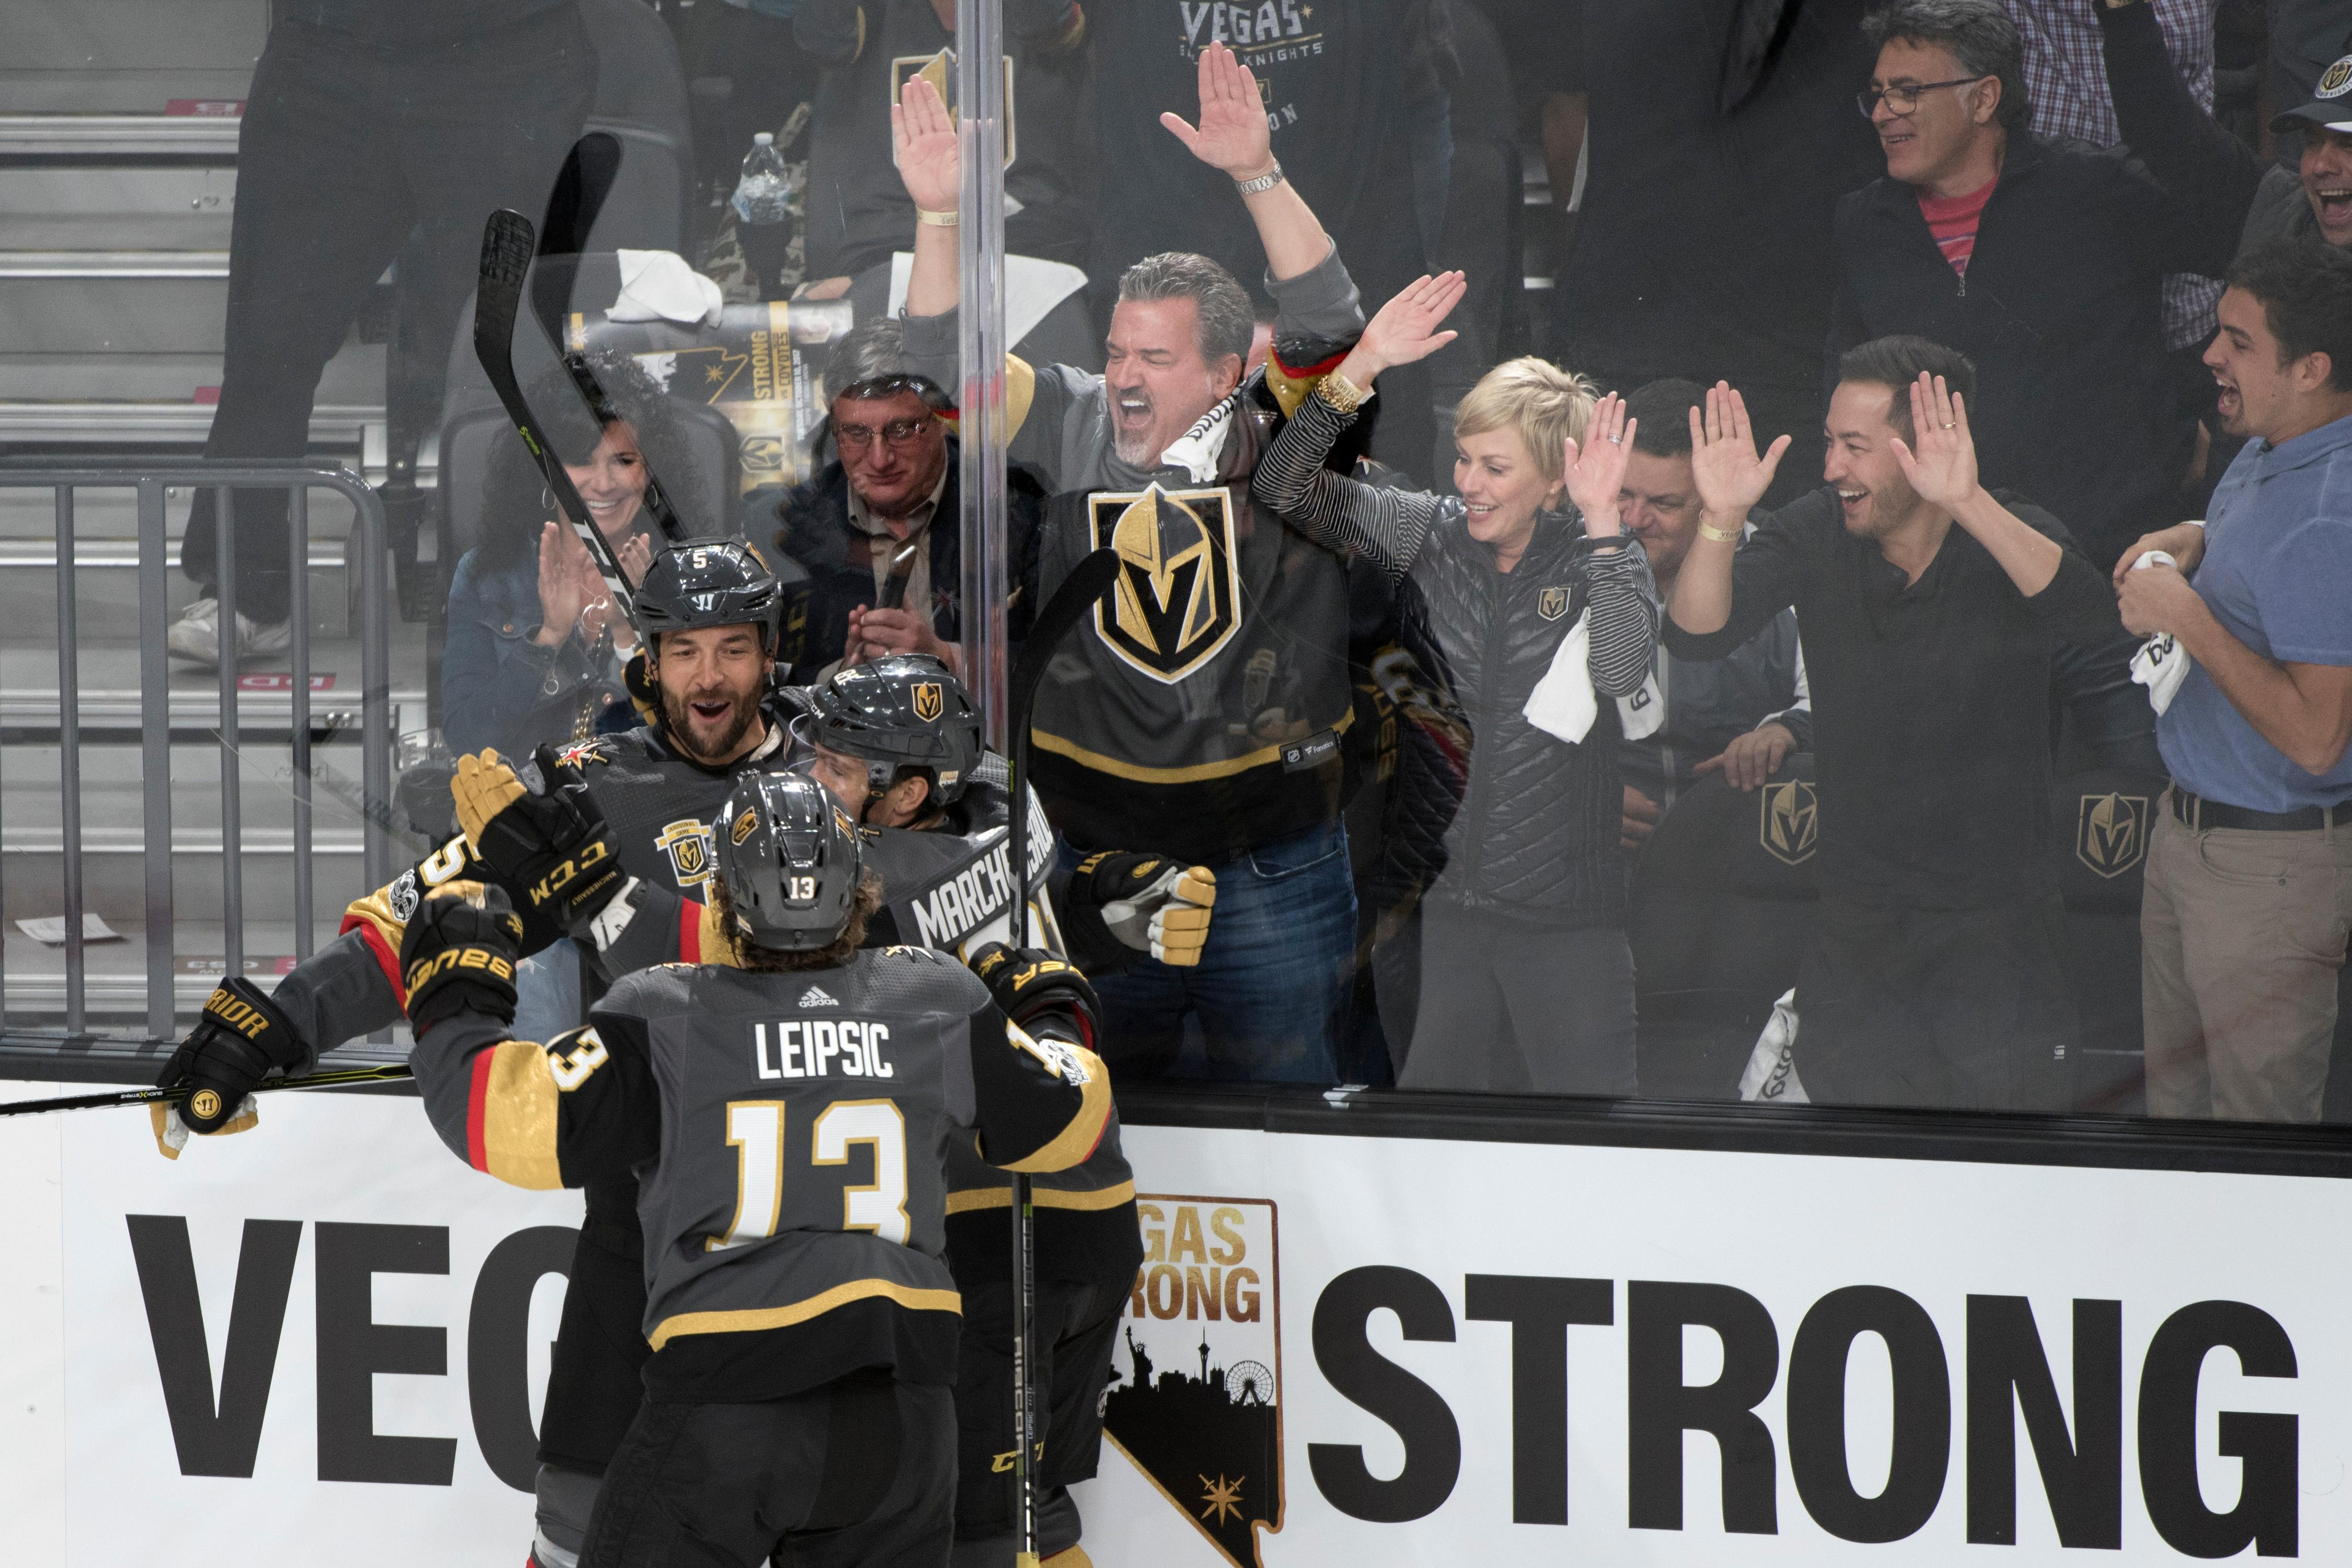 Vegas Golden Knights defenseman Deryk Engelland (5), Vegas Golden Knights right wing Brendan Leipsic (13) and Vegas Golden Knights left wing Jonathan Marchessault (81) celebrate Engelland's goal against the Arizona Coyotes during the Knights home opener Tuesday, Oct. 10, 2017, at the T-Mobile Arena. The Knights won 5-2 to extend their winning streak to 3-0. CREDIT: Sam Morris/Las Vegas News Bureau